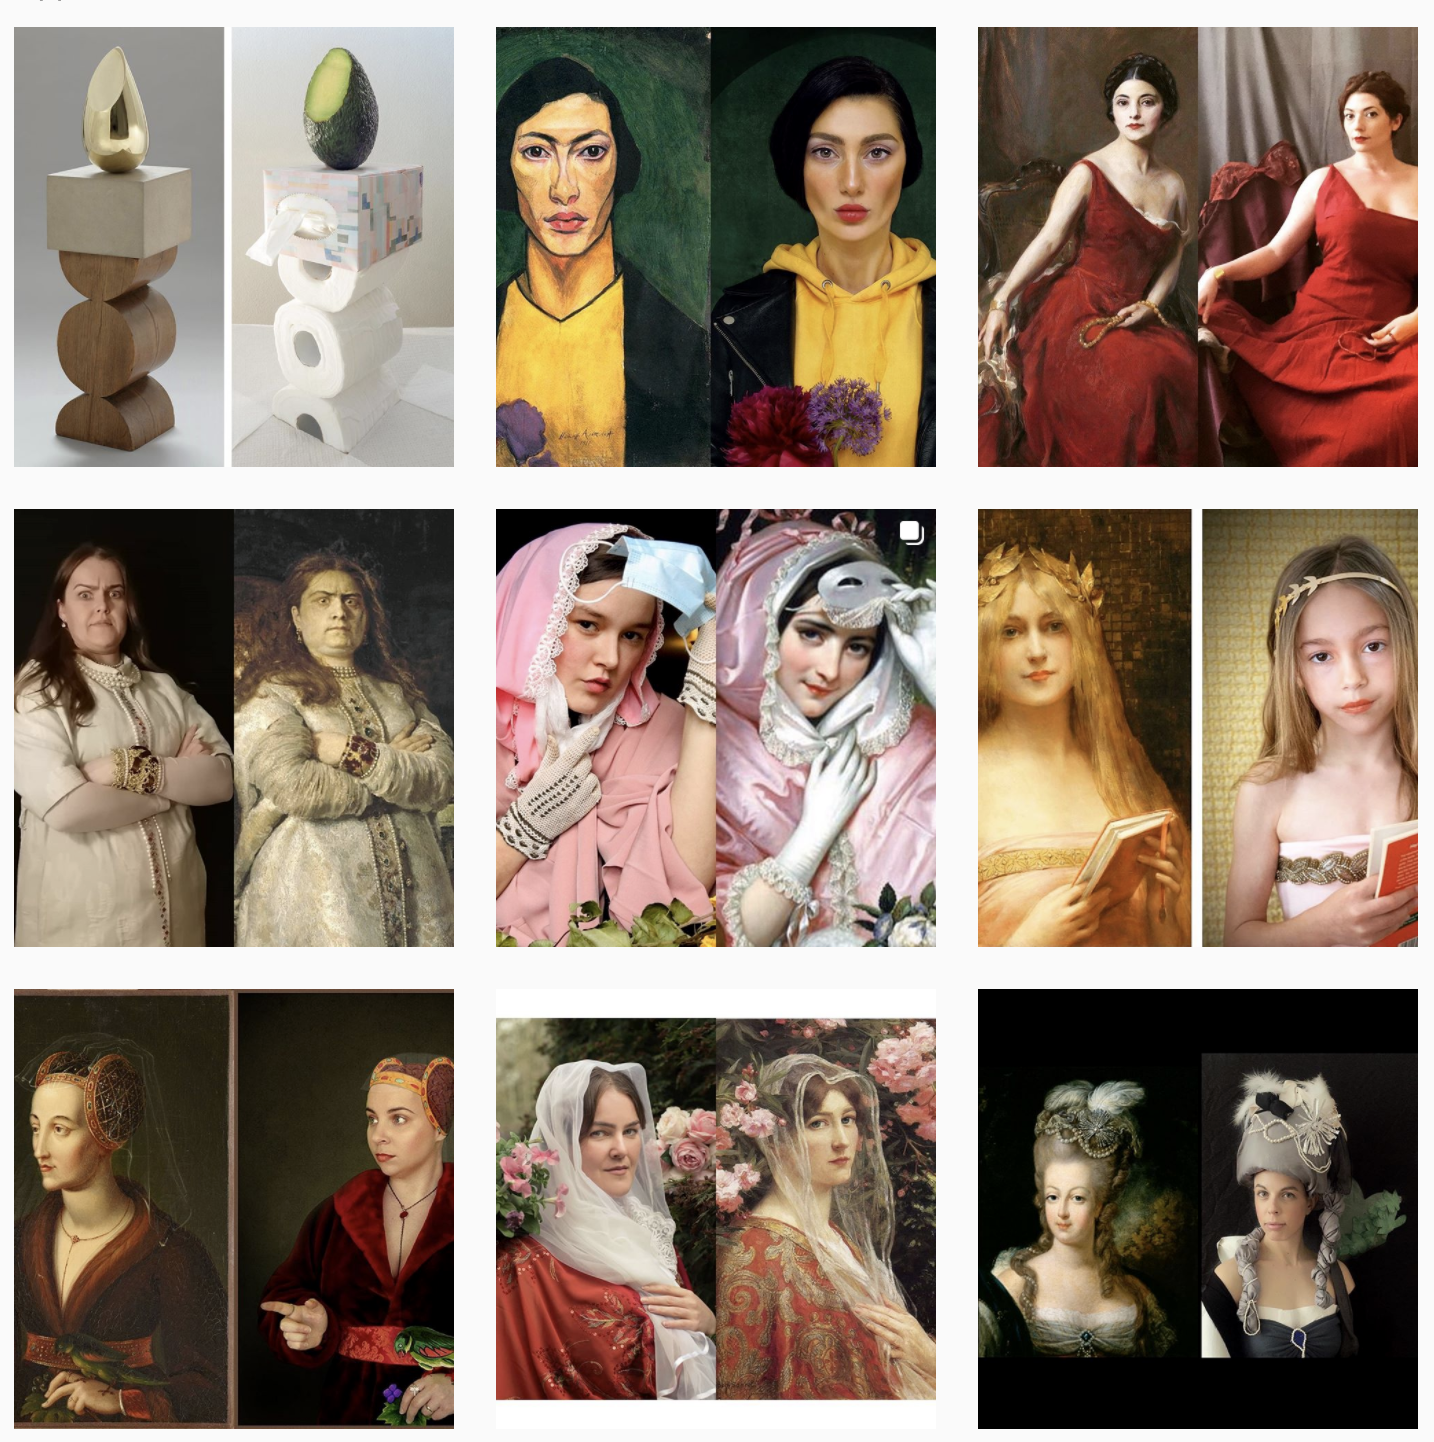 Examples of the #GettyMuseumChallenge where people imitate famous pieces of art!